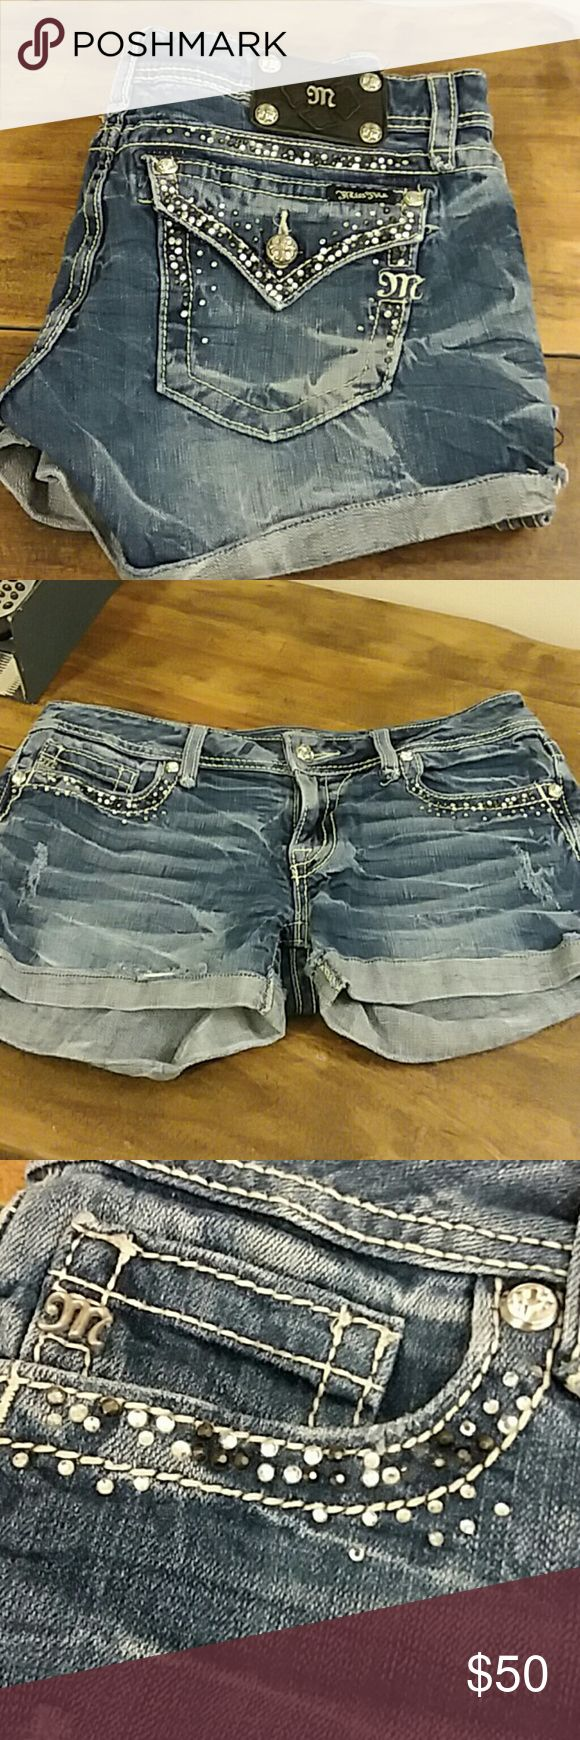 Miss Me Shorts- JE5453H In good condition shorts. Jewels around all pockets. Some fraying and holing designs. Darker wash with light wash accents. Cuff style bottom Miss Me Shorts Jean Shorts